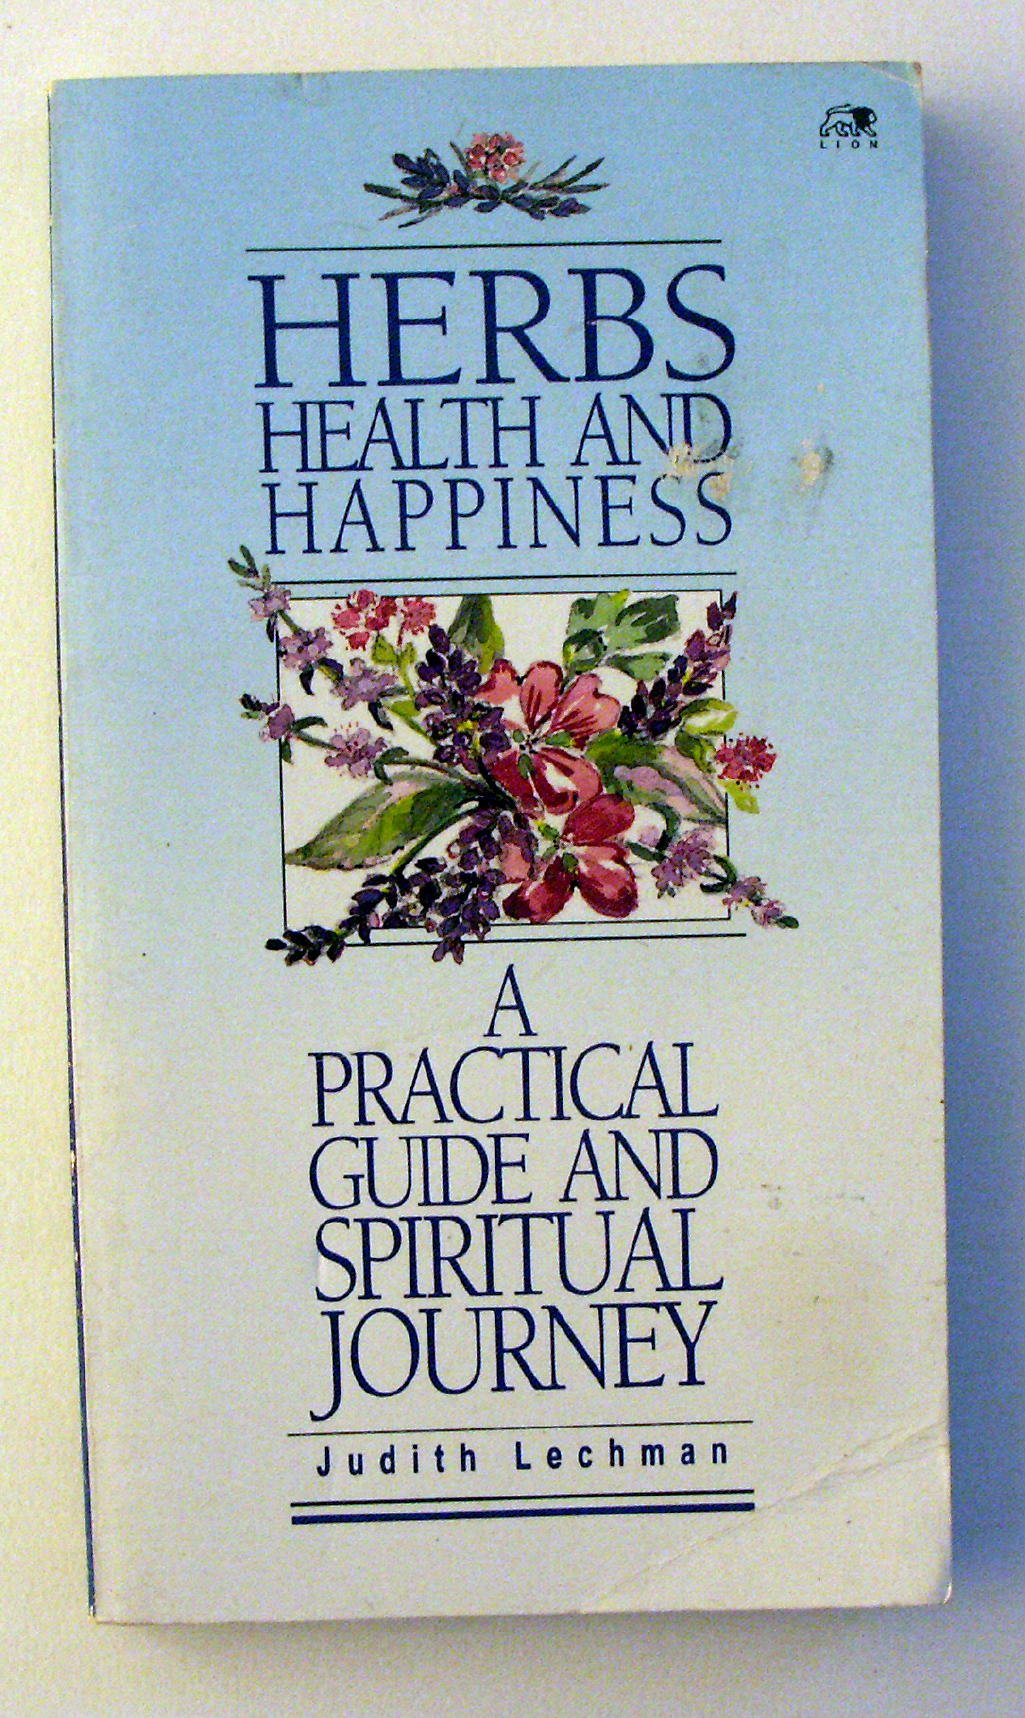 Herbs Health And Happiness A Practical Guide And Spiritual Journey Lechman Judith 9780745918839 Amazon Com Books